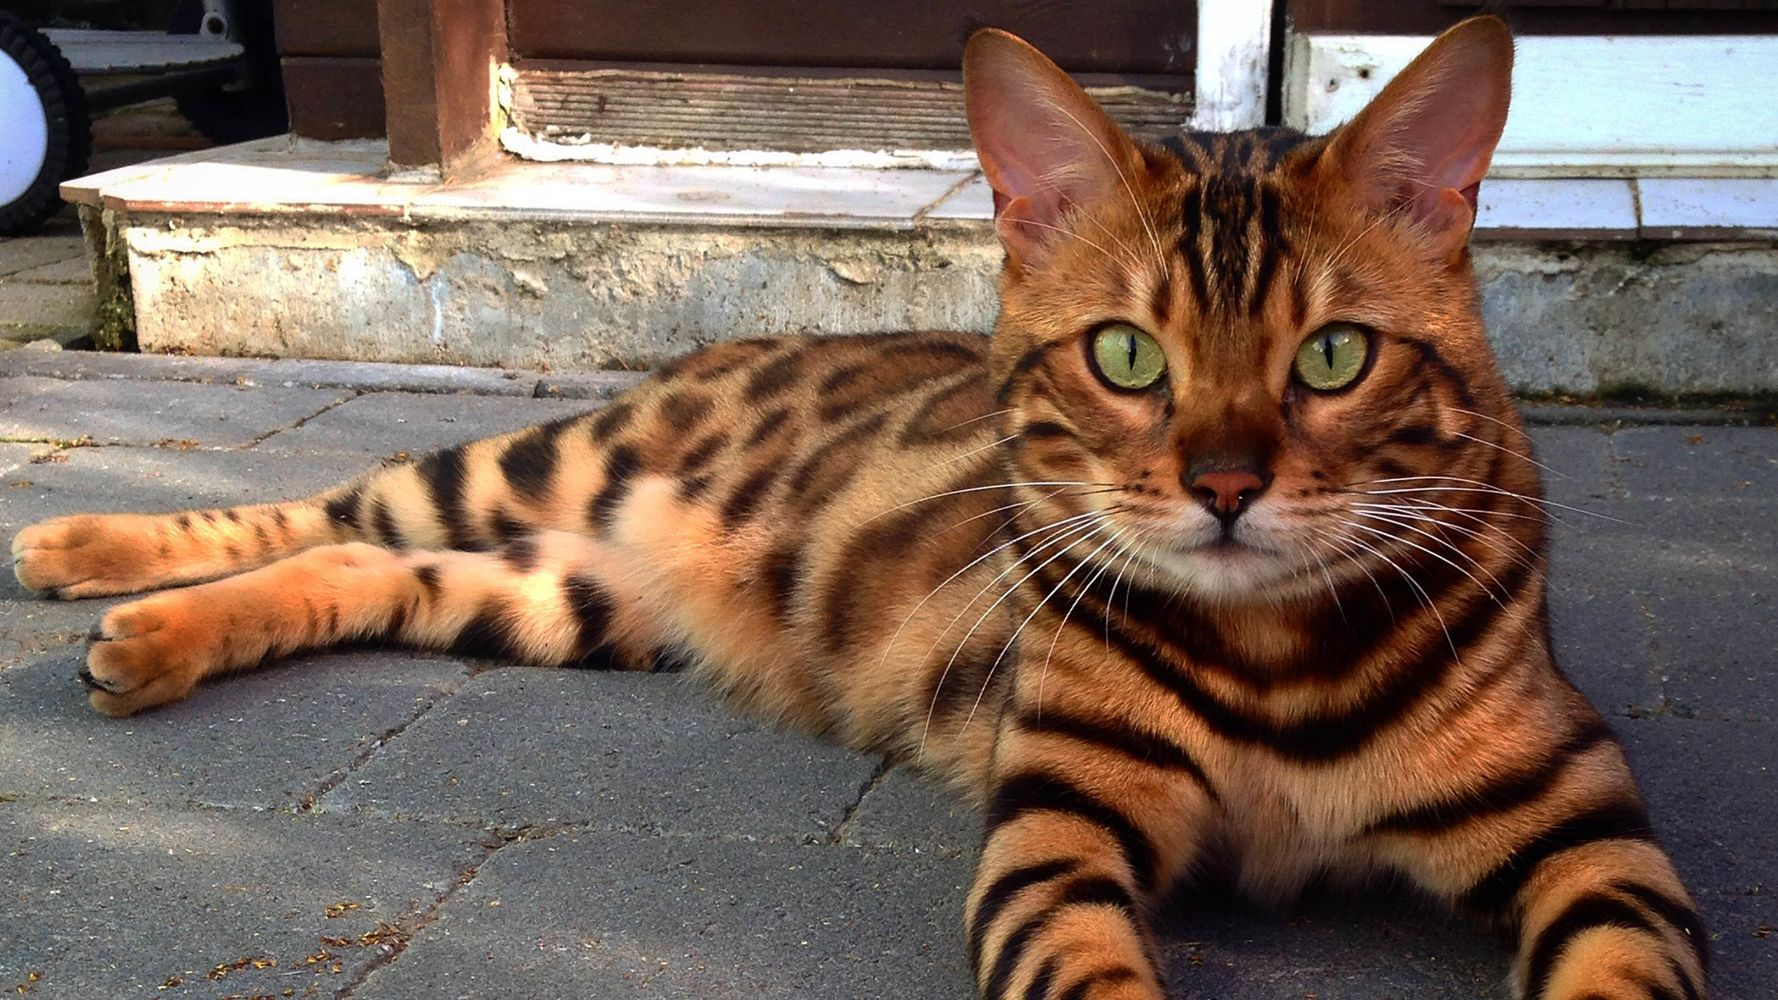 This Striped And Spotted Cat's Fur Is Mesmerizing The Internet